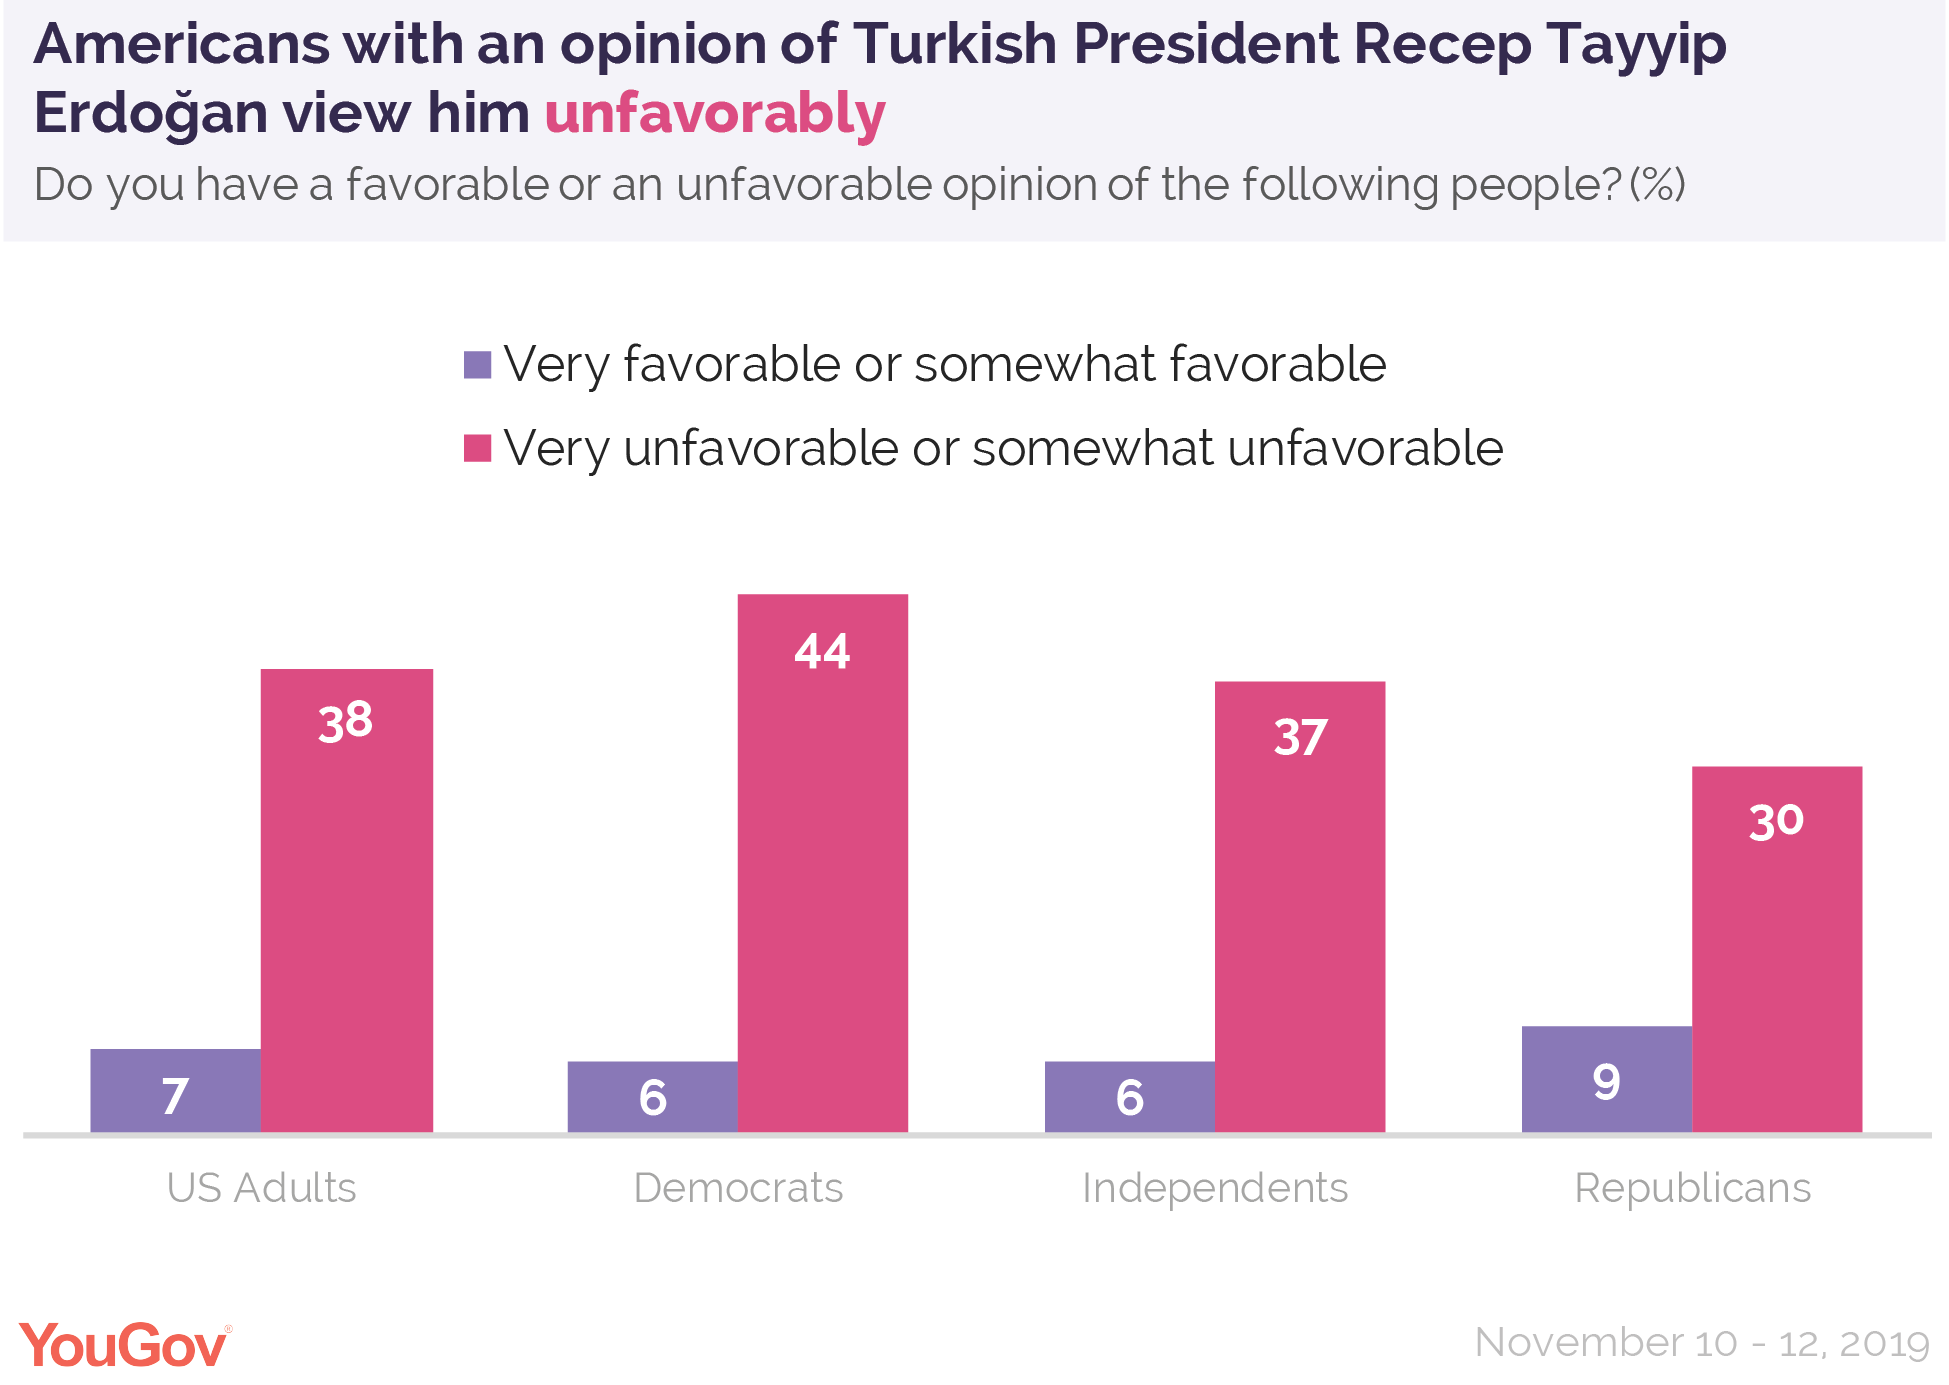 Americans with an opinion of Turkish President Recep Tayyip Erdogan view him unfavorably